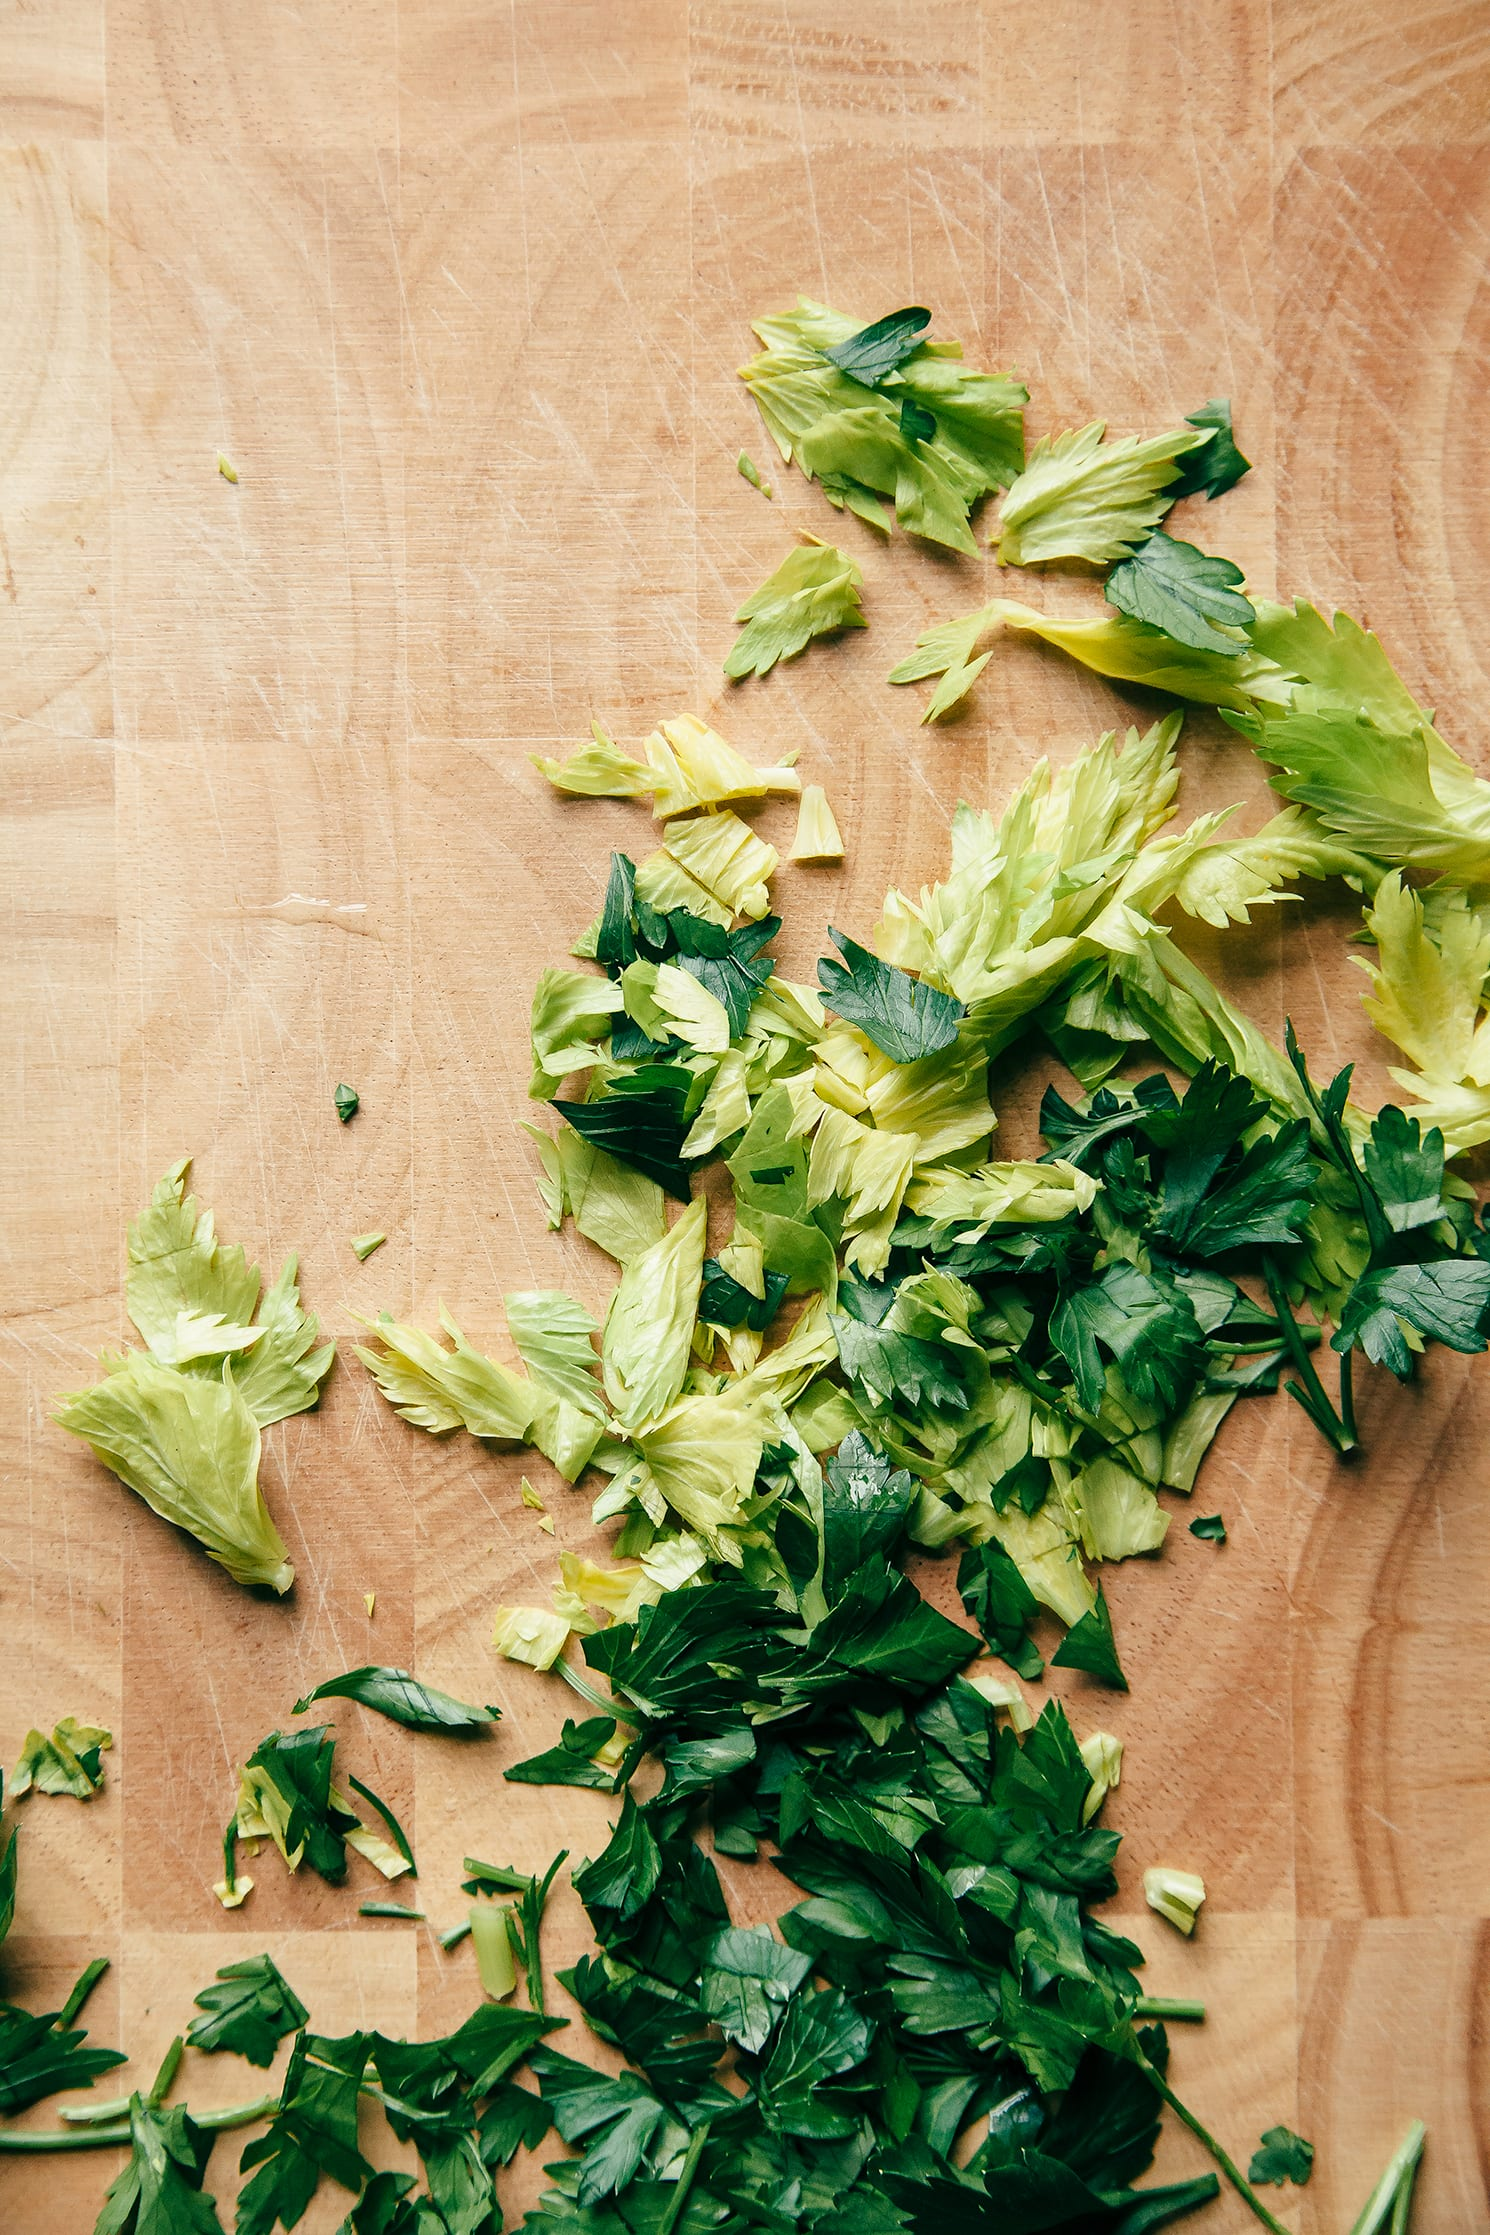 Image shows parsley and celery heart leaves on a cutting board.